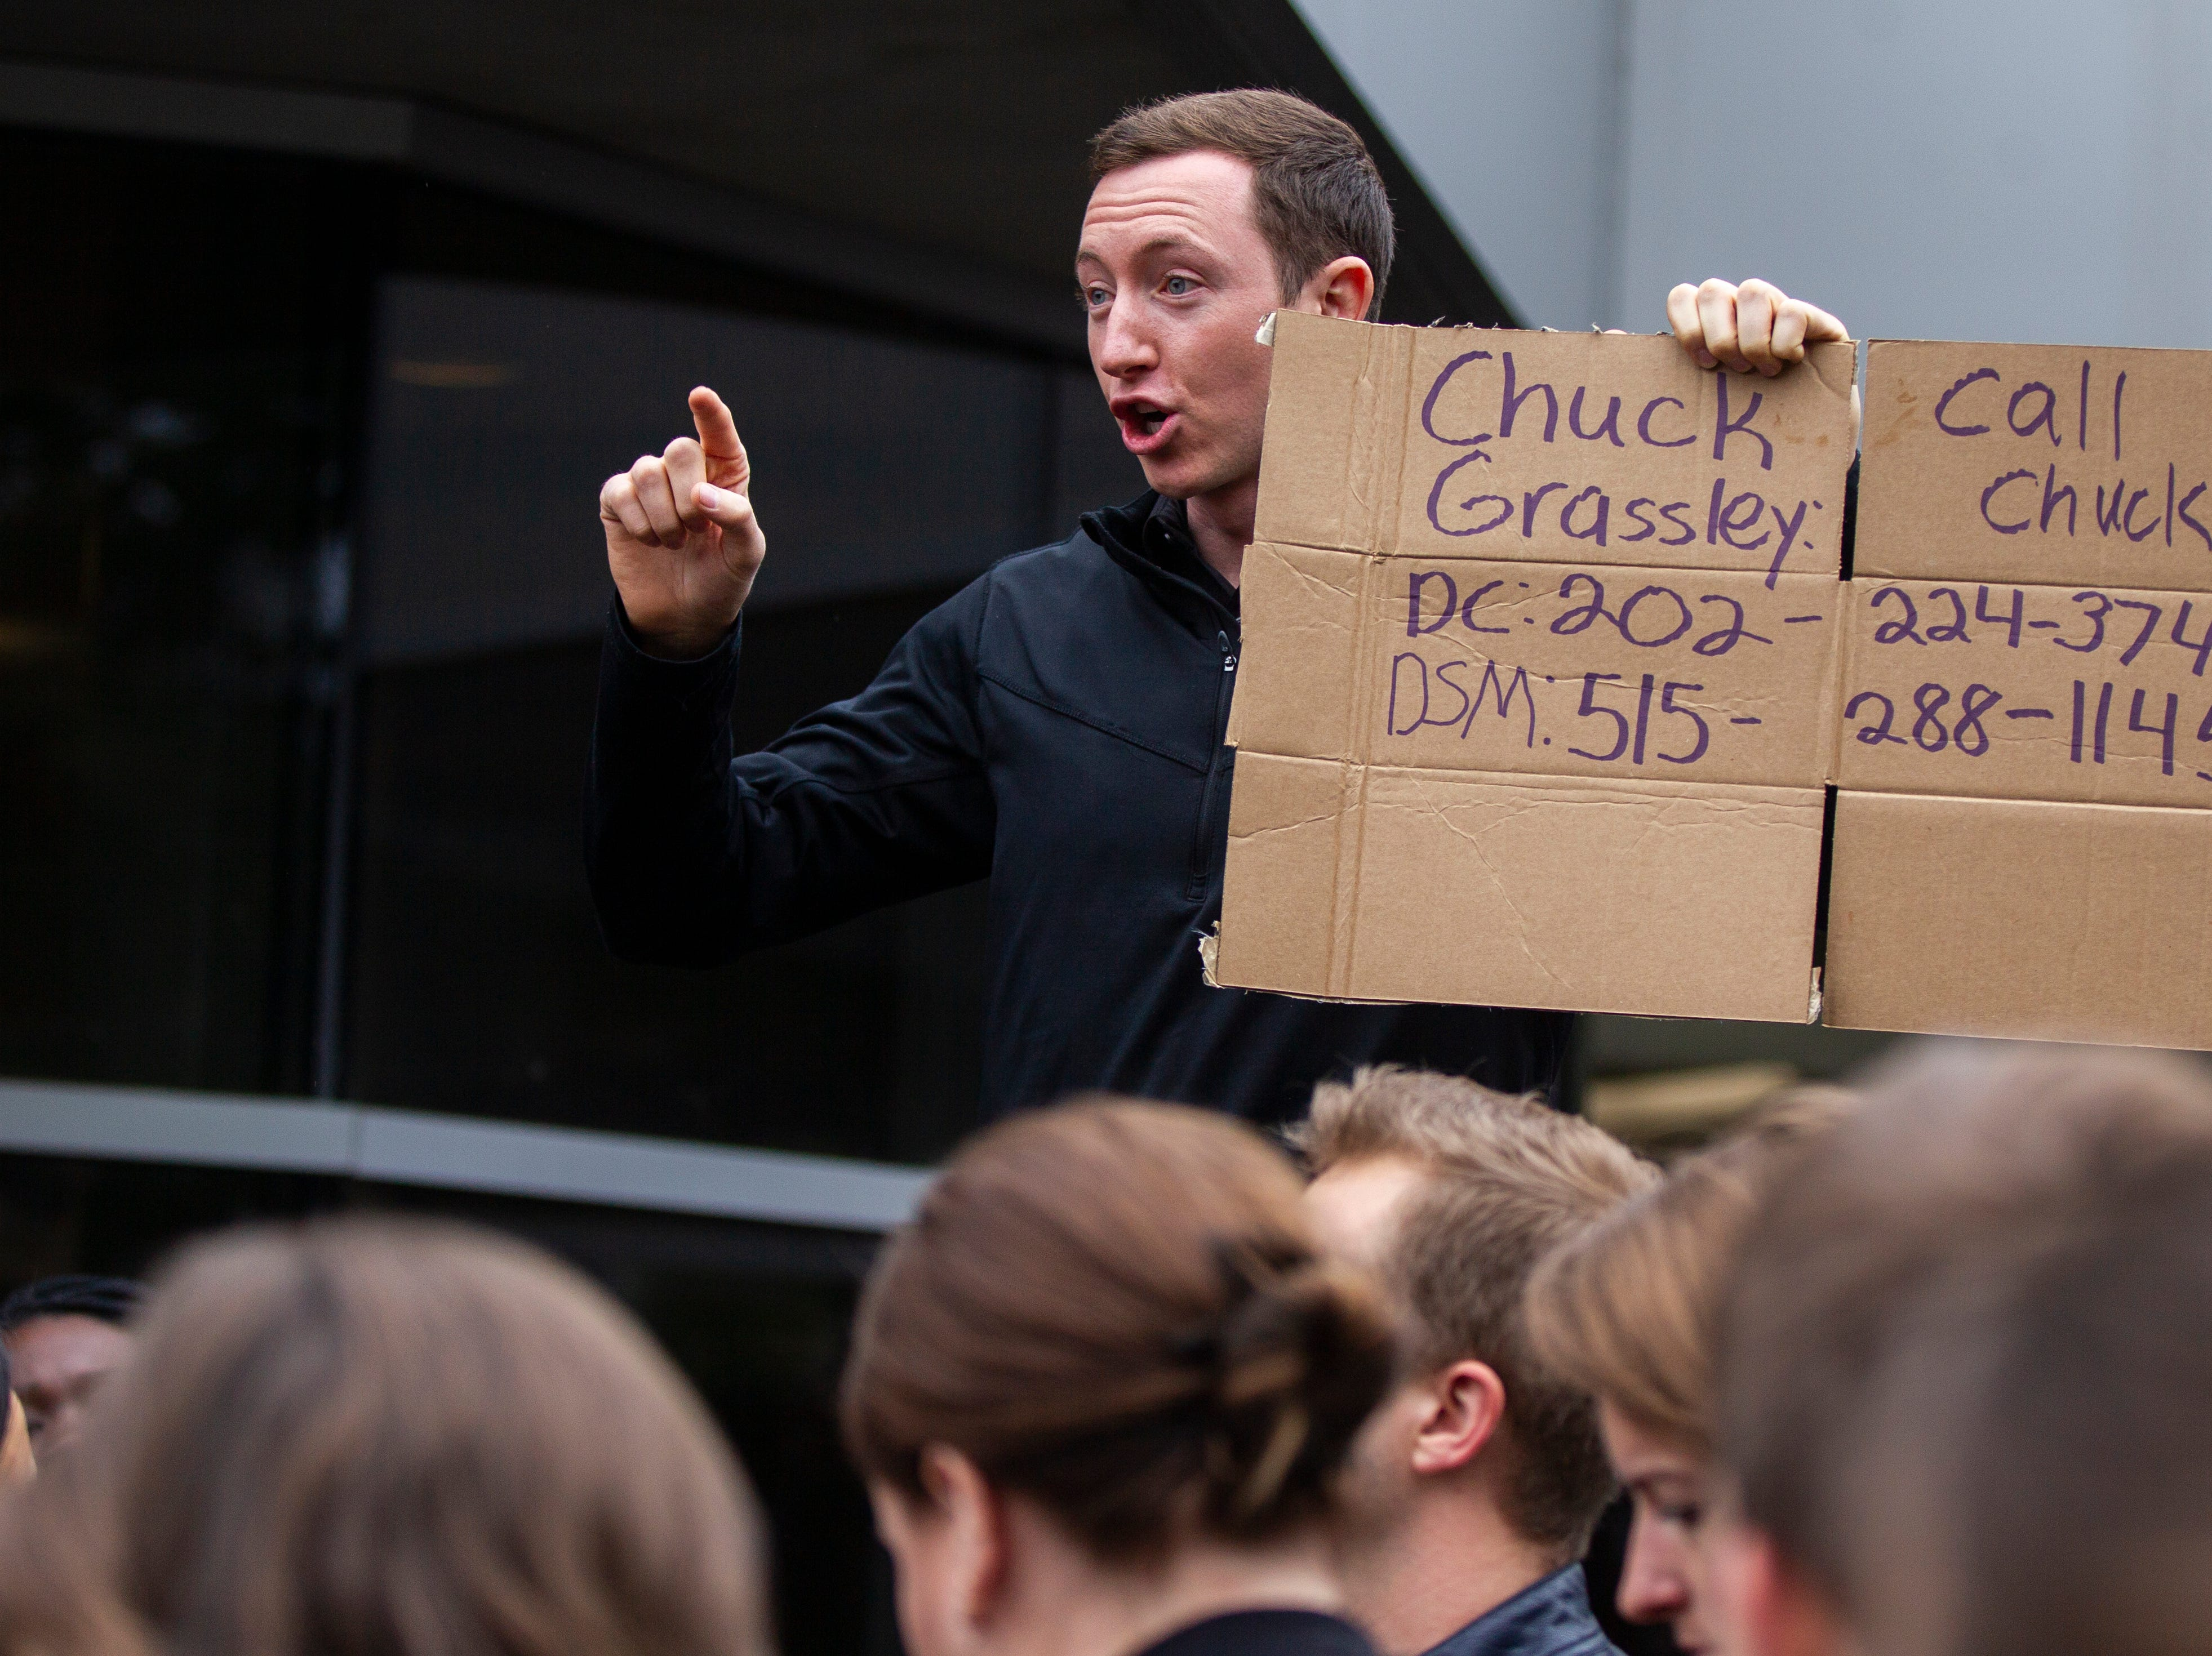 Paul Esker, a first year law student, originally from Cedar Rapids speaks during protest against Supreme Court nominee Brett Kavanaugh on Friday, Sept. 28, 2018, outside the Boyd Law Building on the University of Iowa campus in Iowa City.